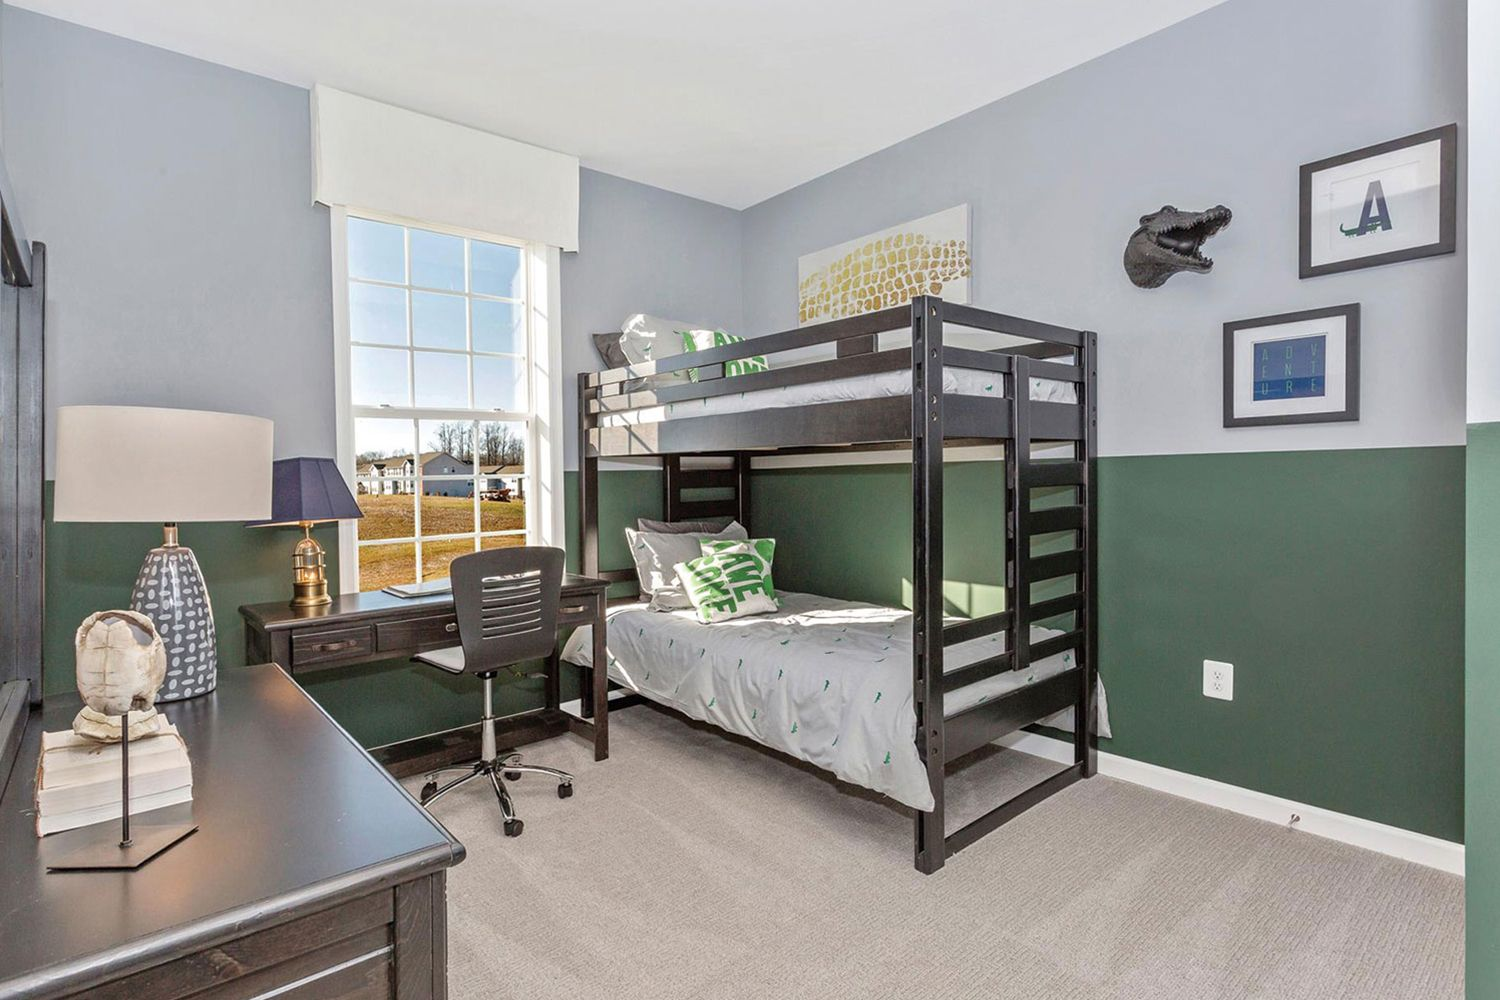 Home Style Ideas Boys bedroom with bunk